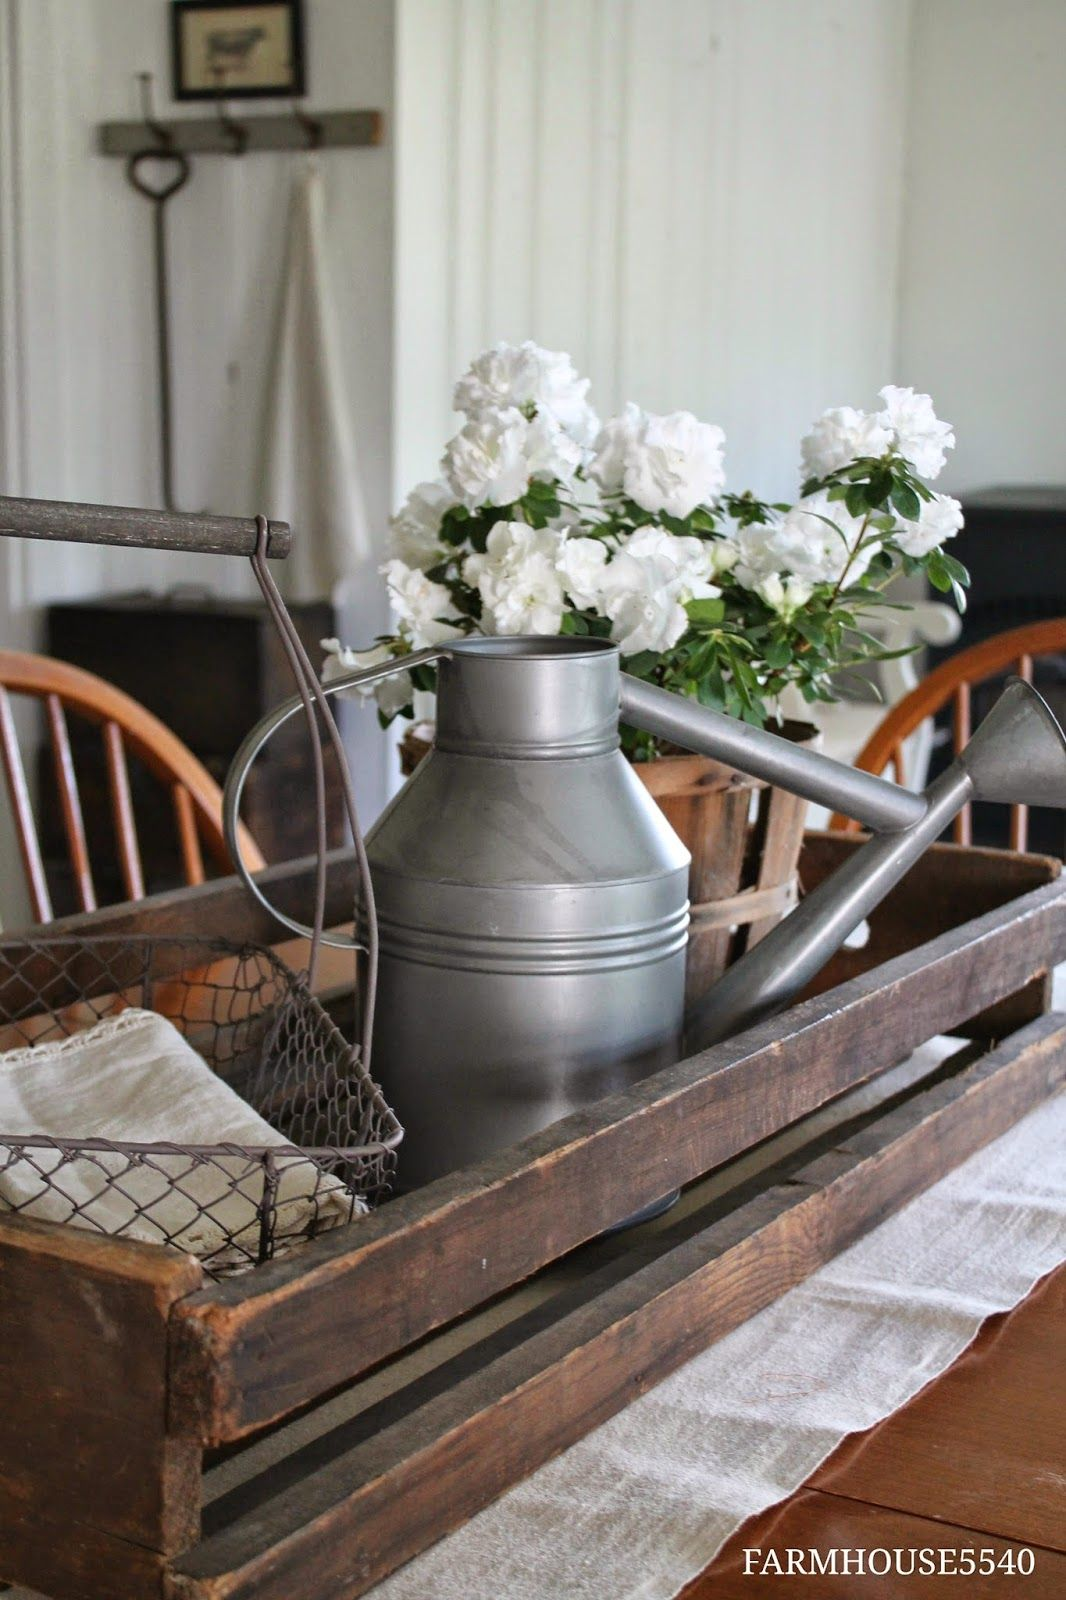 Dining Room Farmhouse5540 Dining Table Centerpiece Farmhouse Dining Room Table Farmhouse Table Decor